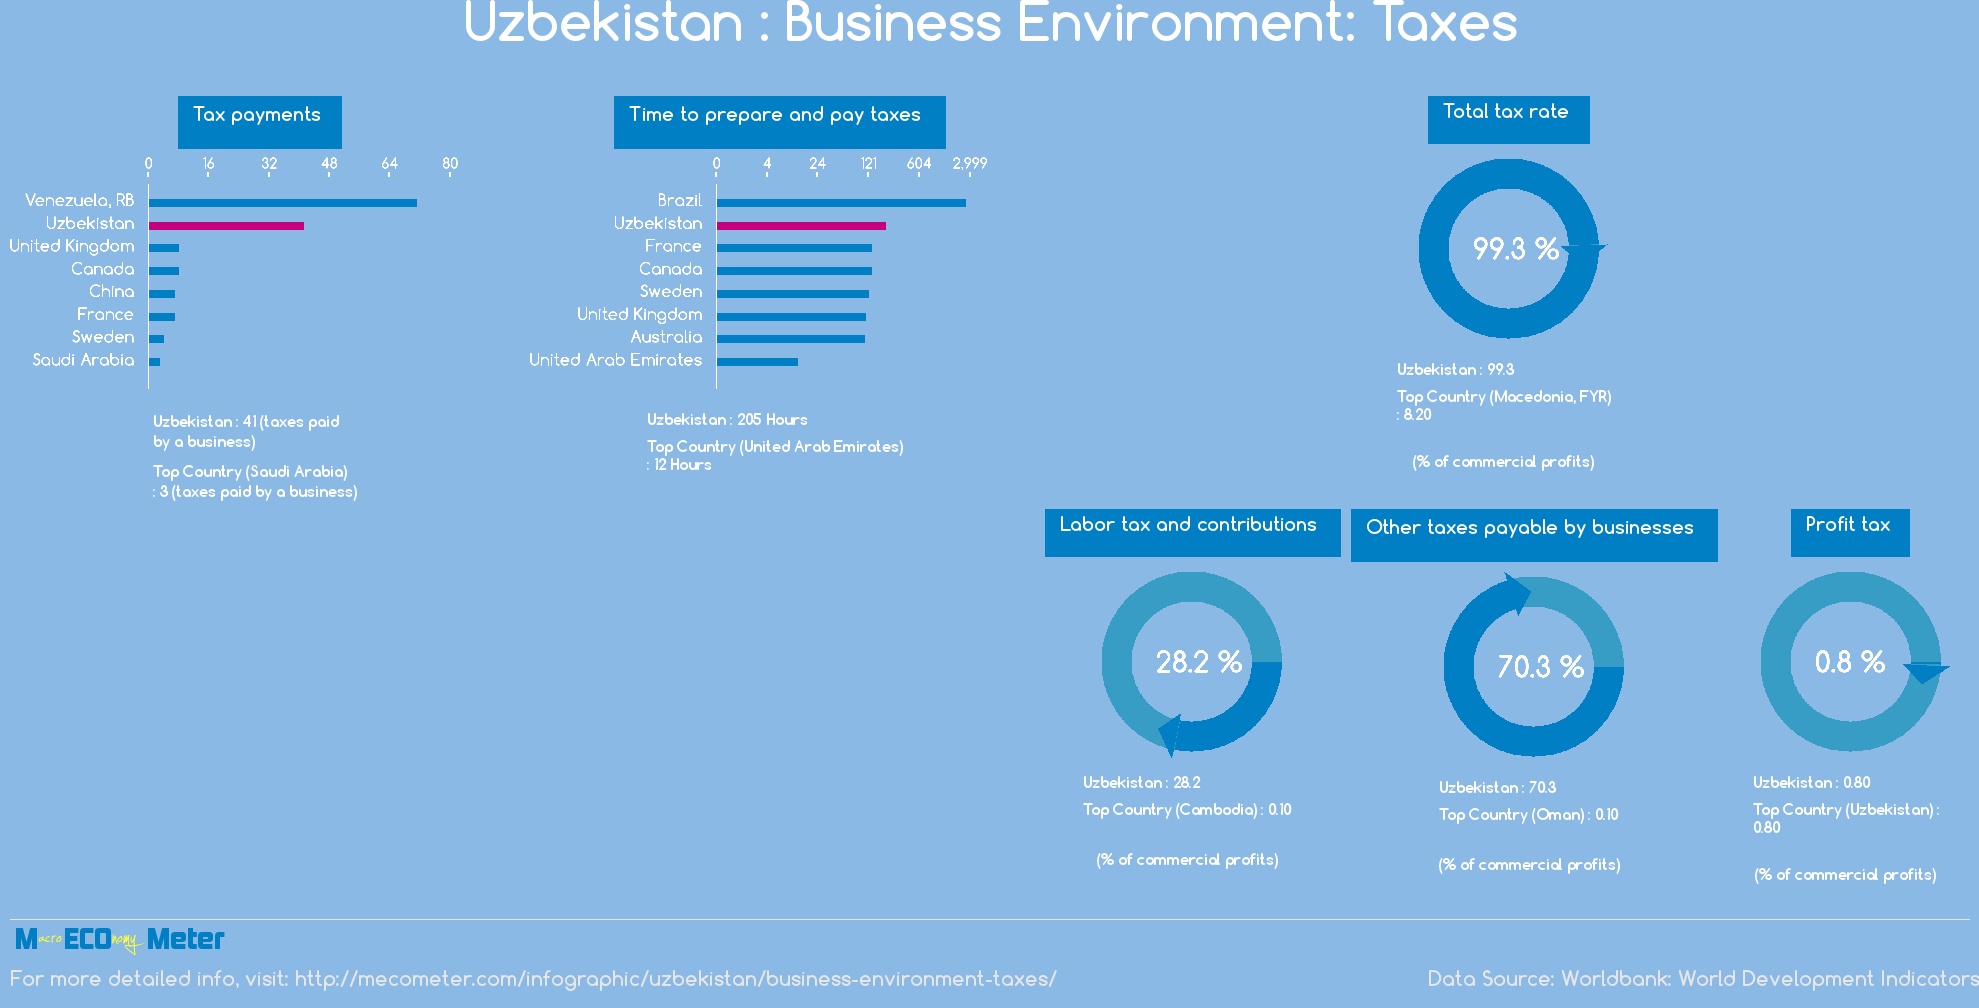 Uzbekistan : Business Environment: Taxes